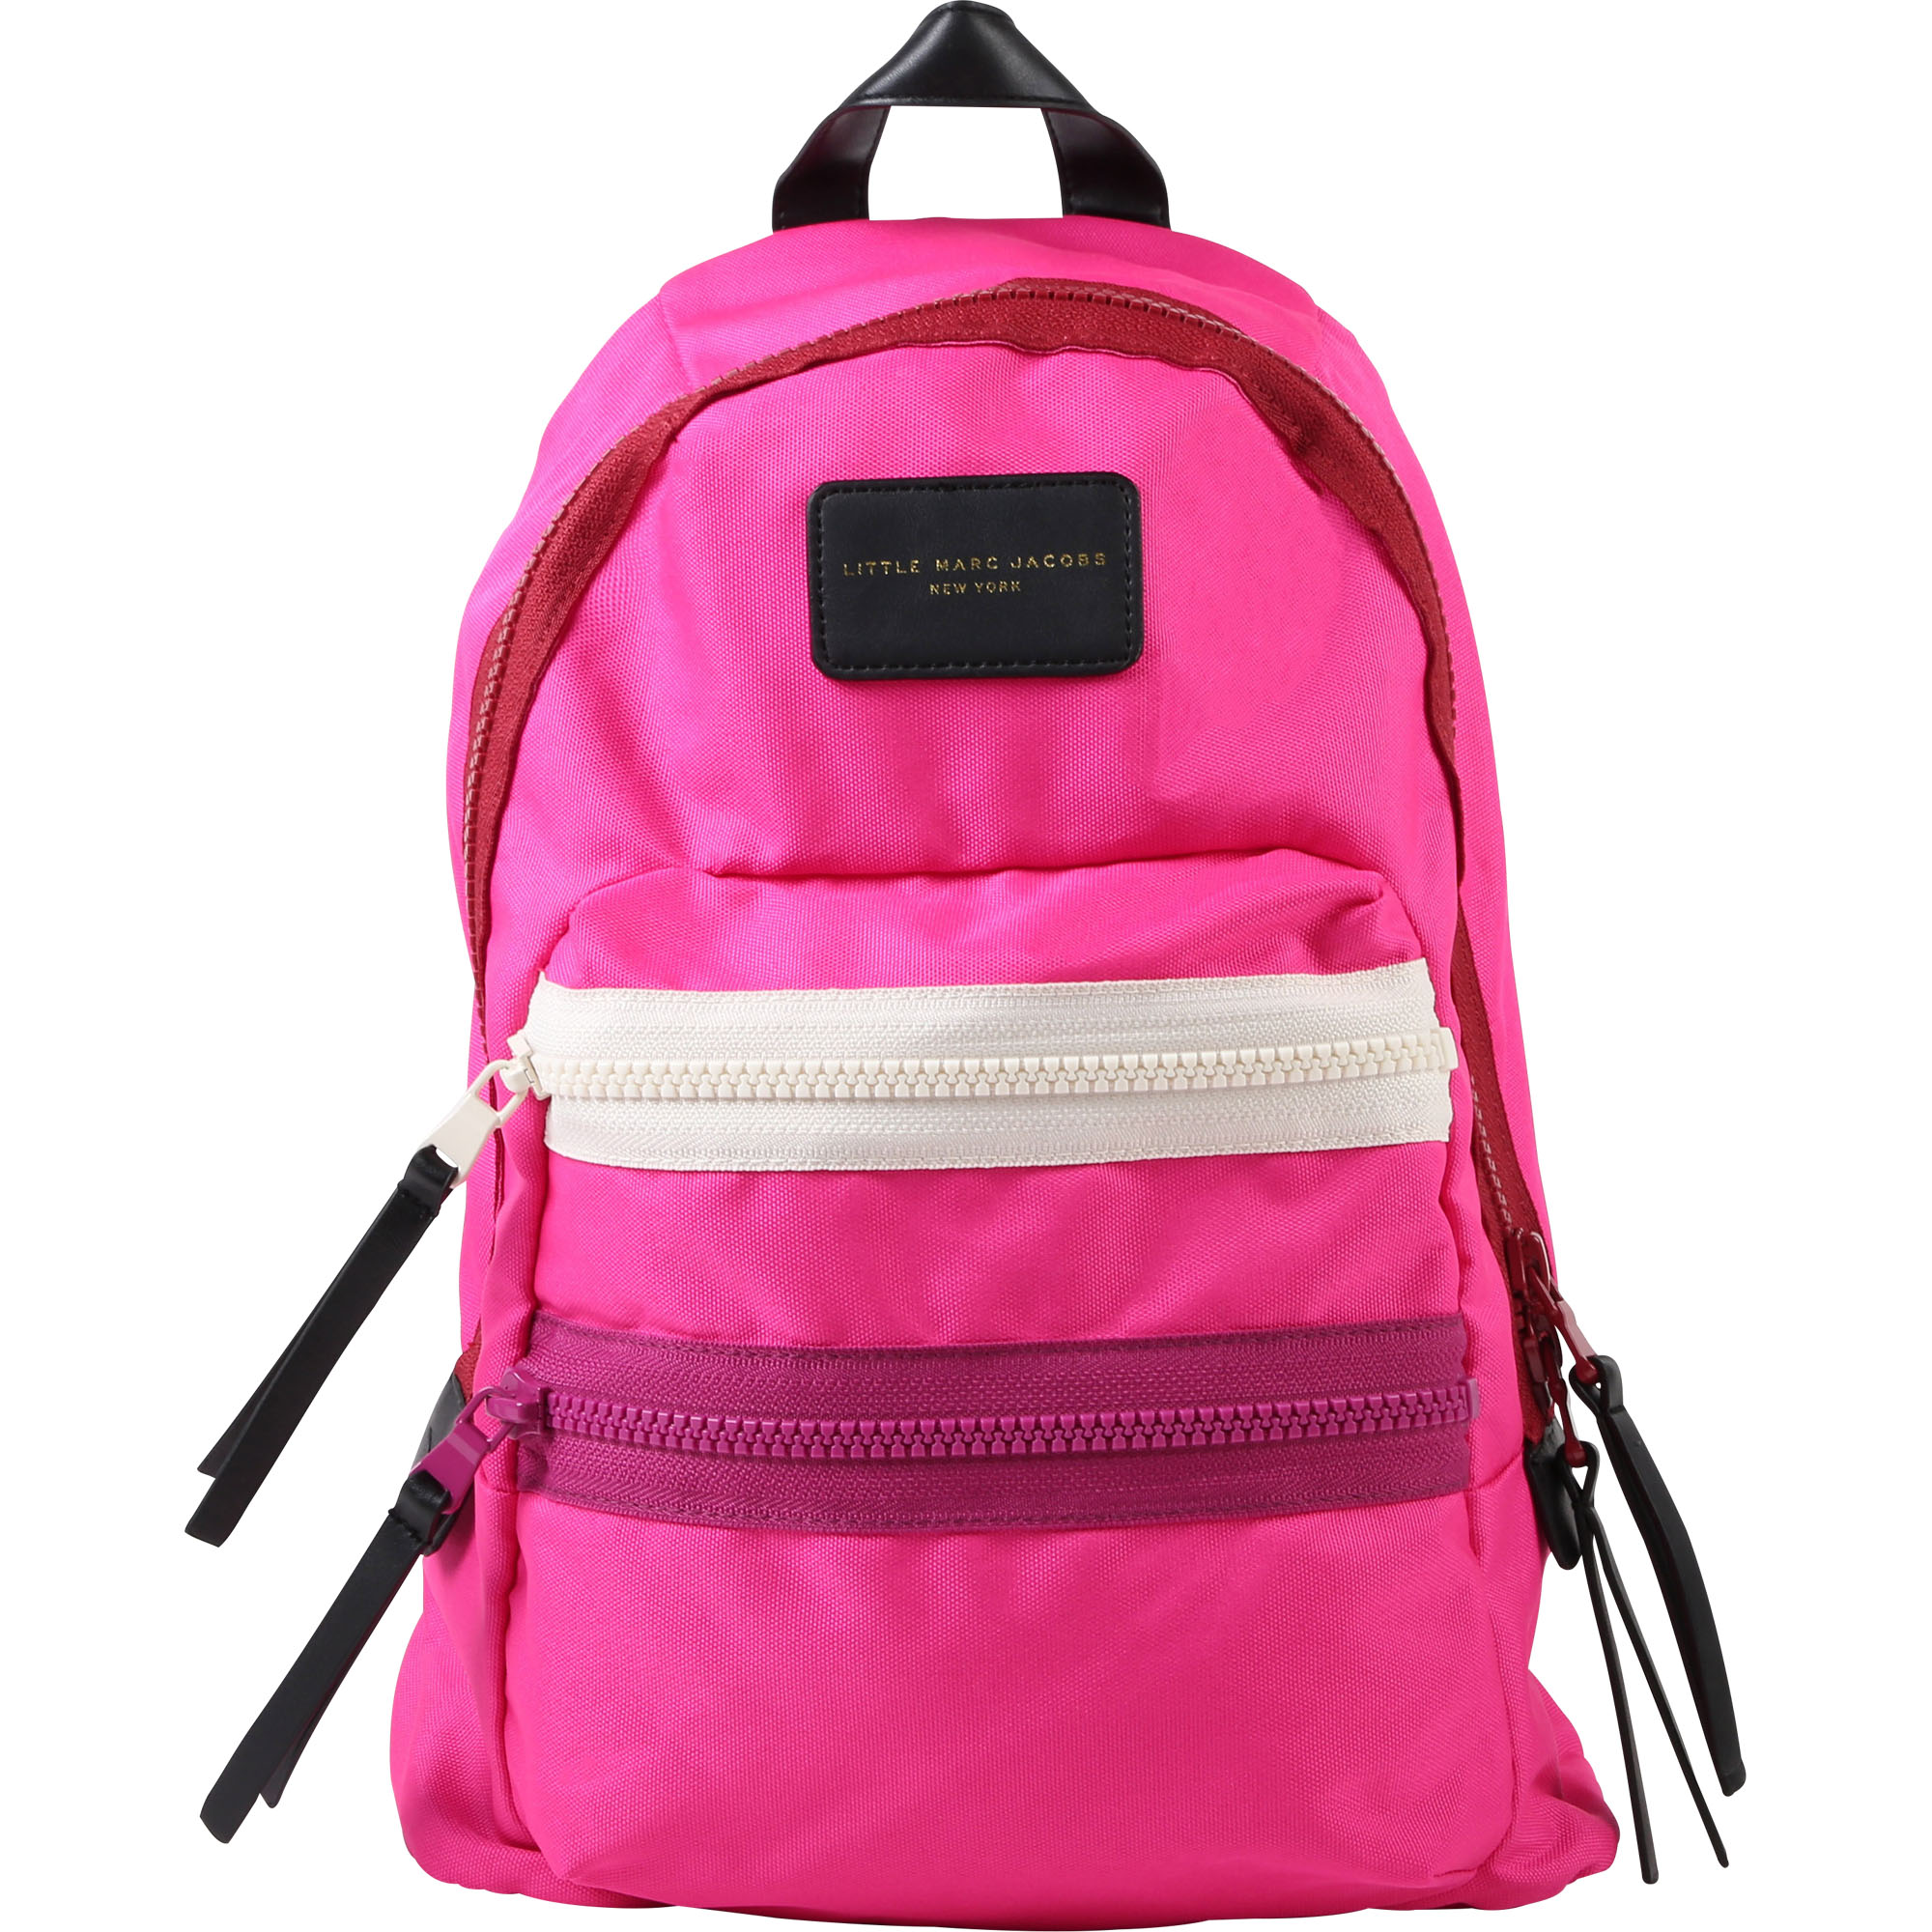 Backpack LITTLE MARC JACOBS for GIRL